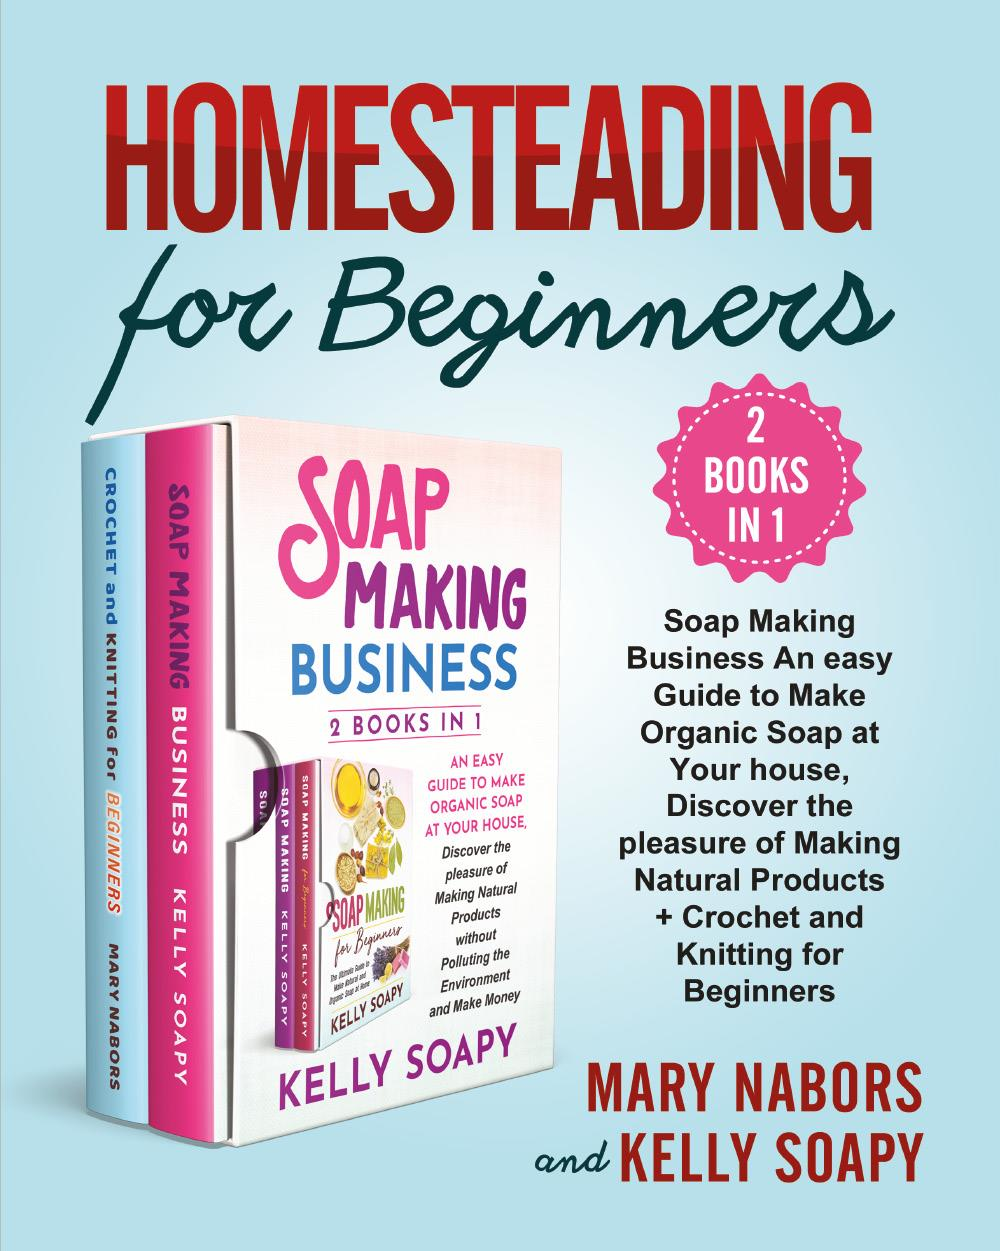 Homesteading for Beginners (2 Books in 1). Beginners (2 Books in 1) : Soap Making Business An easy Guide to Make Organic Soap at Your house, Discover the pleasure of Making Natural Products + Crochet and Knitting for Beginners